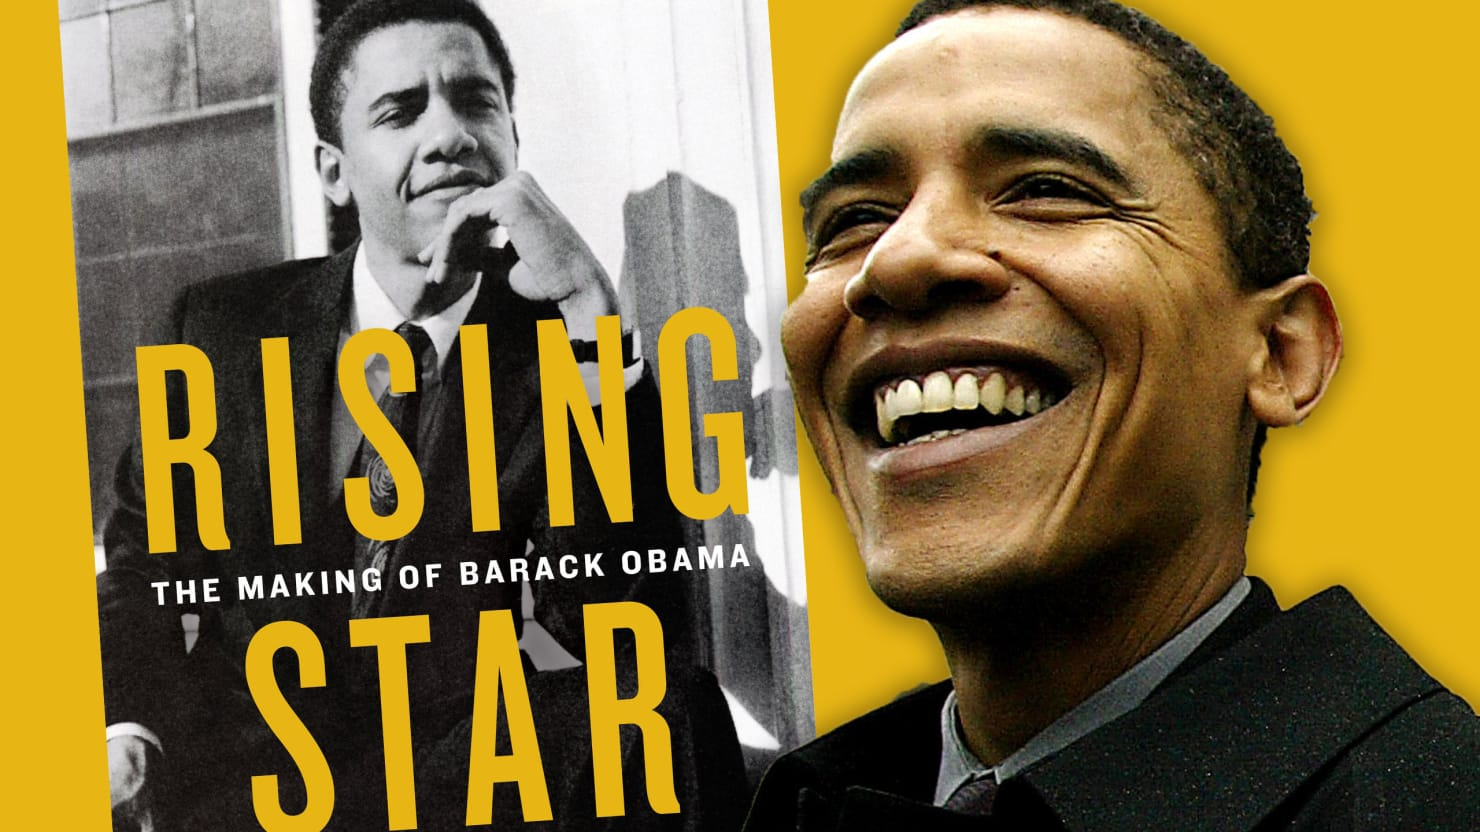 Think You Know Everything About Obama? Guess Again, Says ... Daily Beast